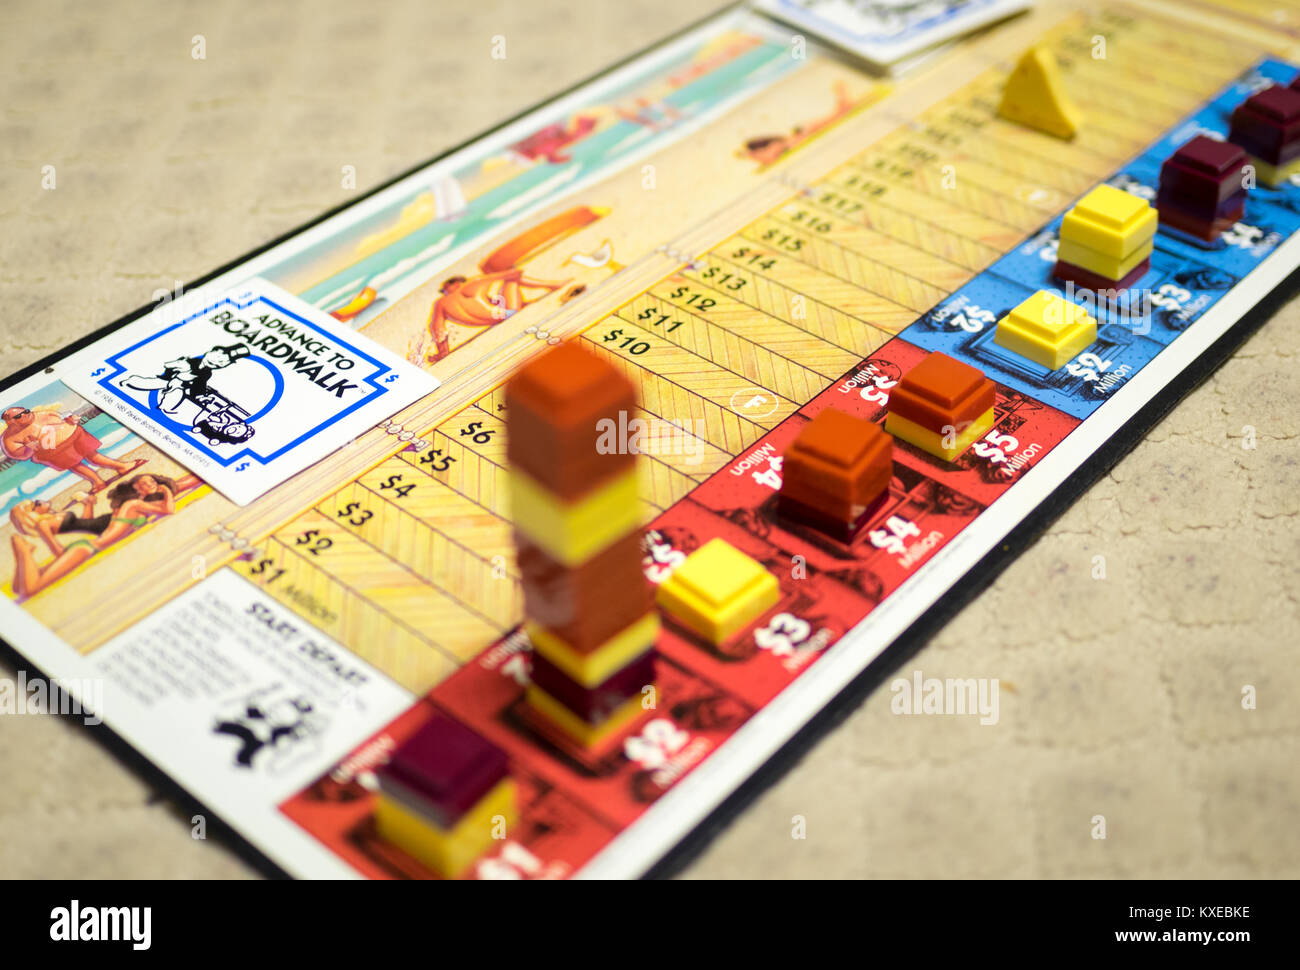 The game board of Advance to Boardwalk, a 1985 spin-off of the Parker Brothers board game, Monopoly. - Stock Image